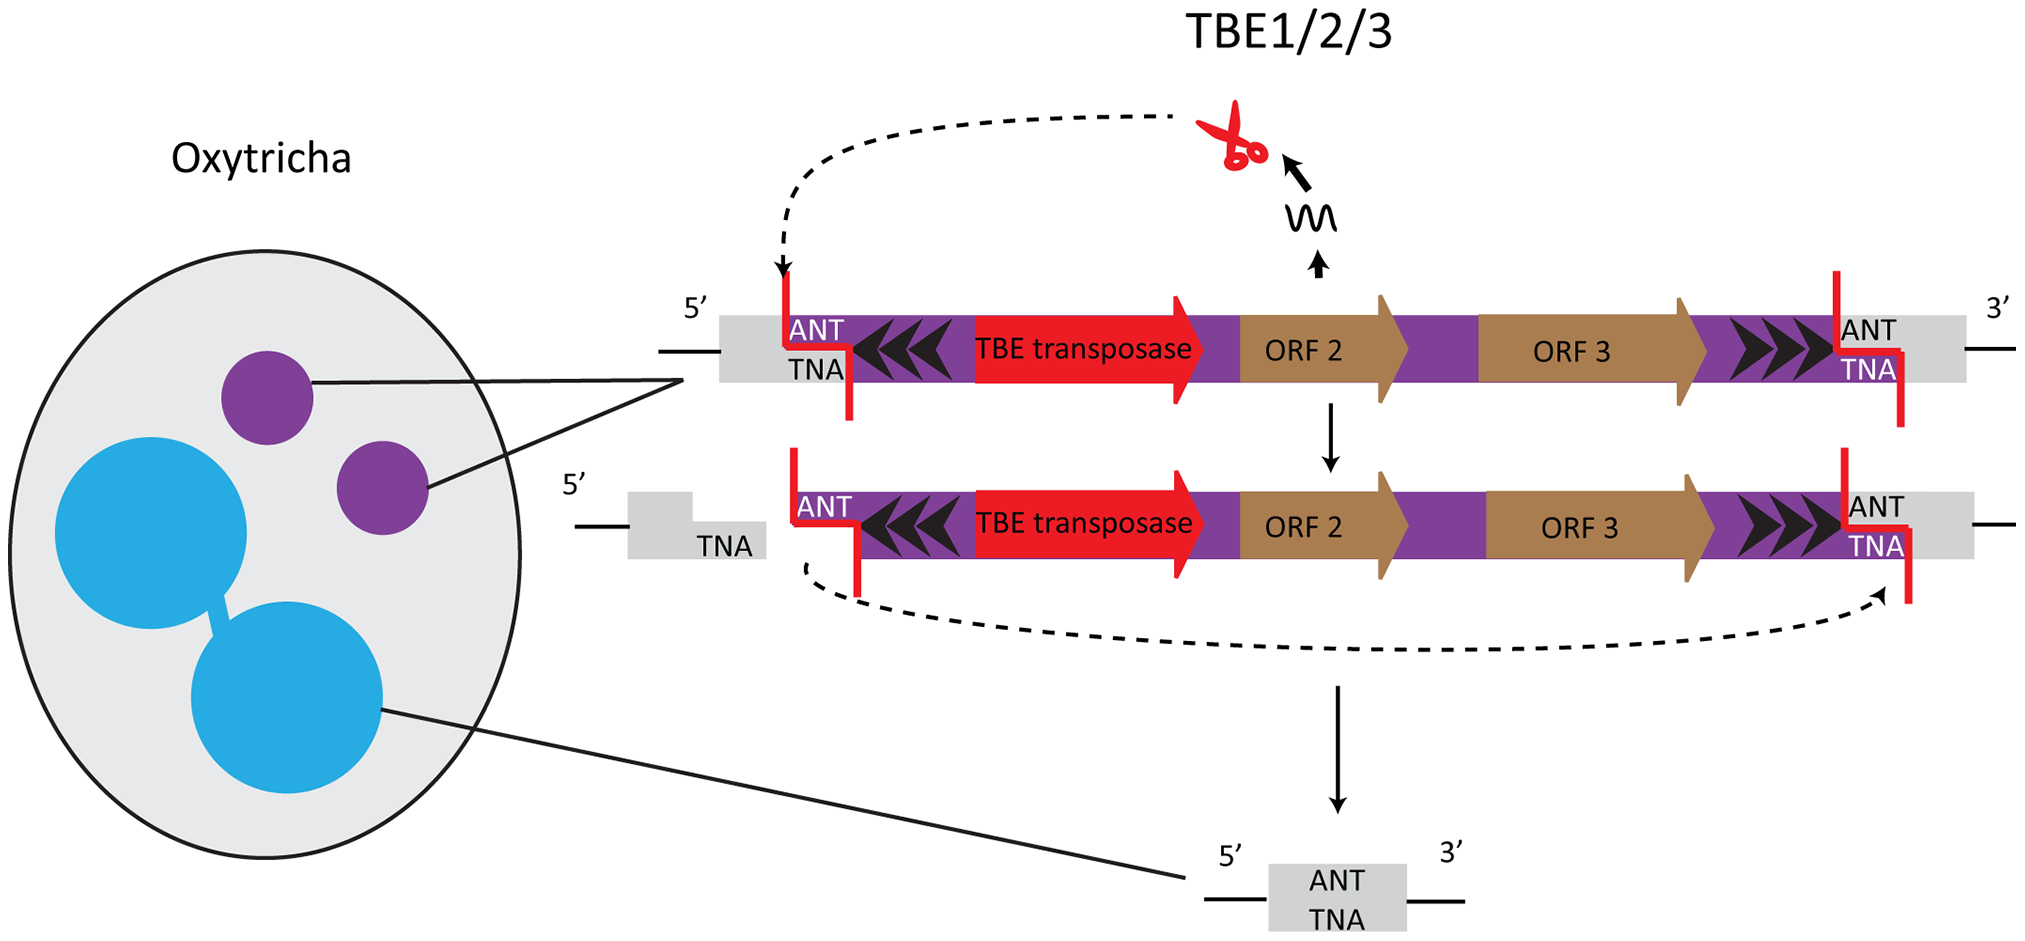 TBE transposases in Oxytricha are germline-limited sequences and they participate in their own removal.